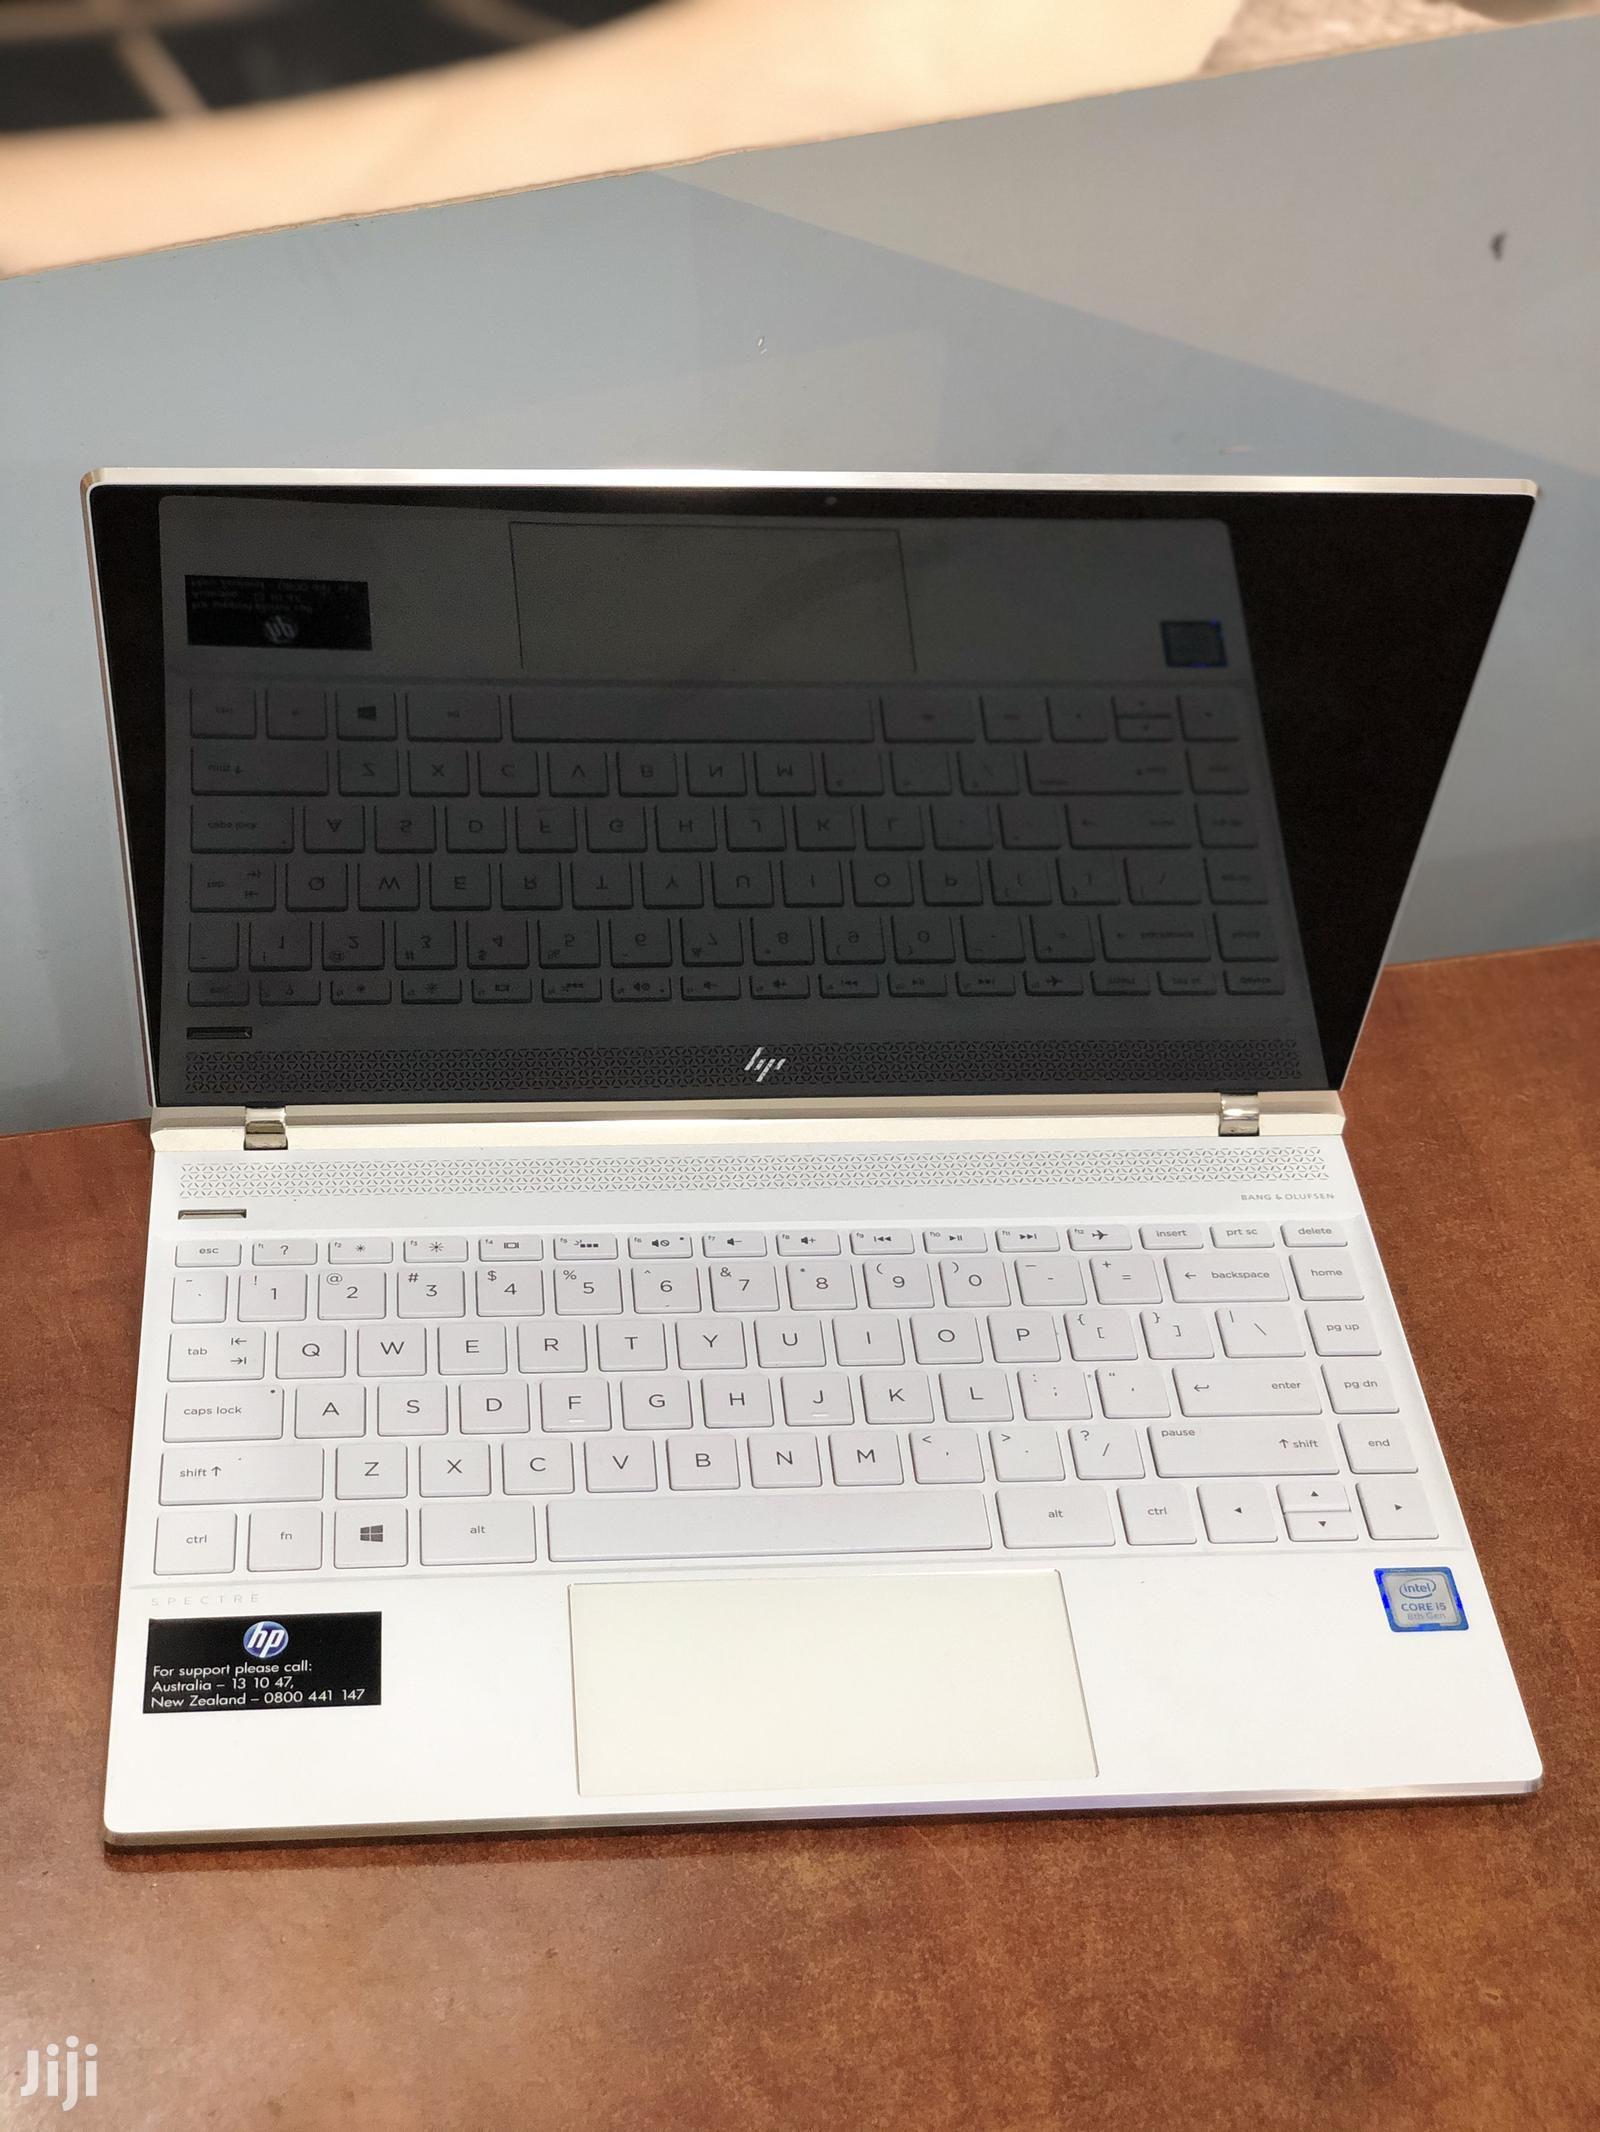 New Laptop HP Spectre 13 8GB Intel Core i5 SSD 256GB | Laptops & Computers for sale in Kampala, Central Region, Uganda